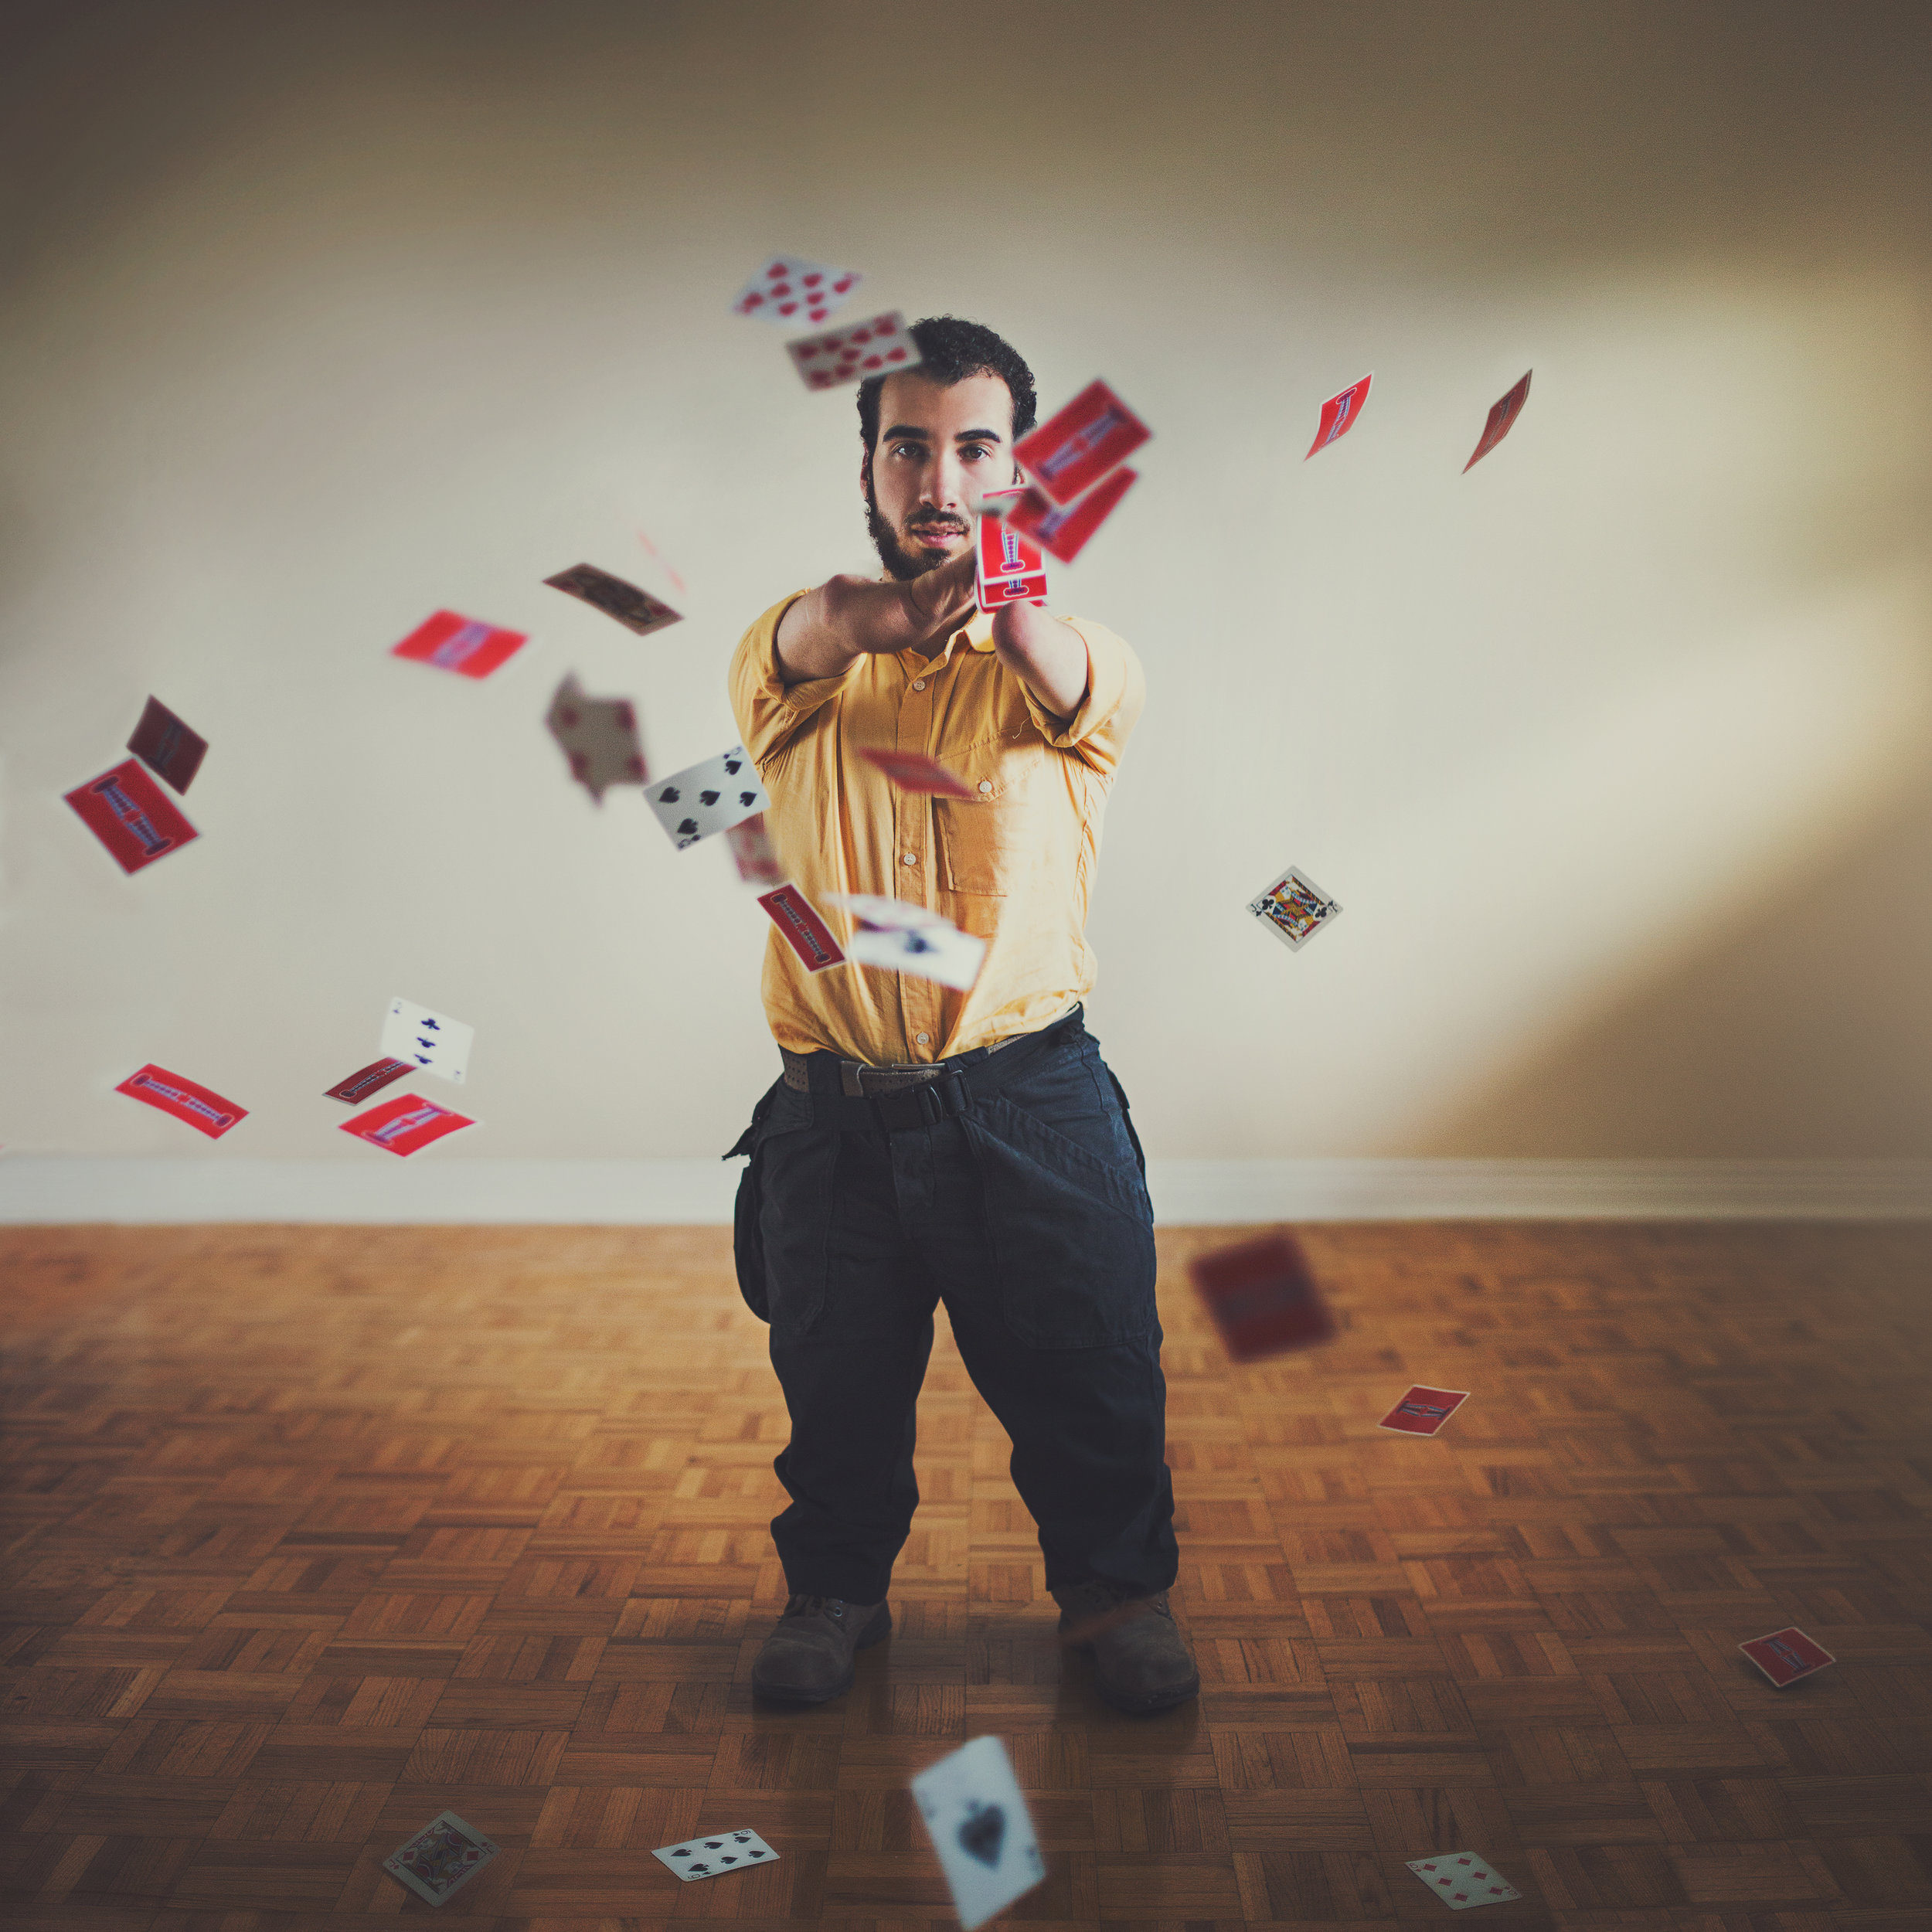 Mahdi Gilbert Magician Without Hands or Feet